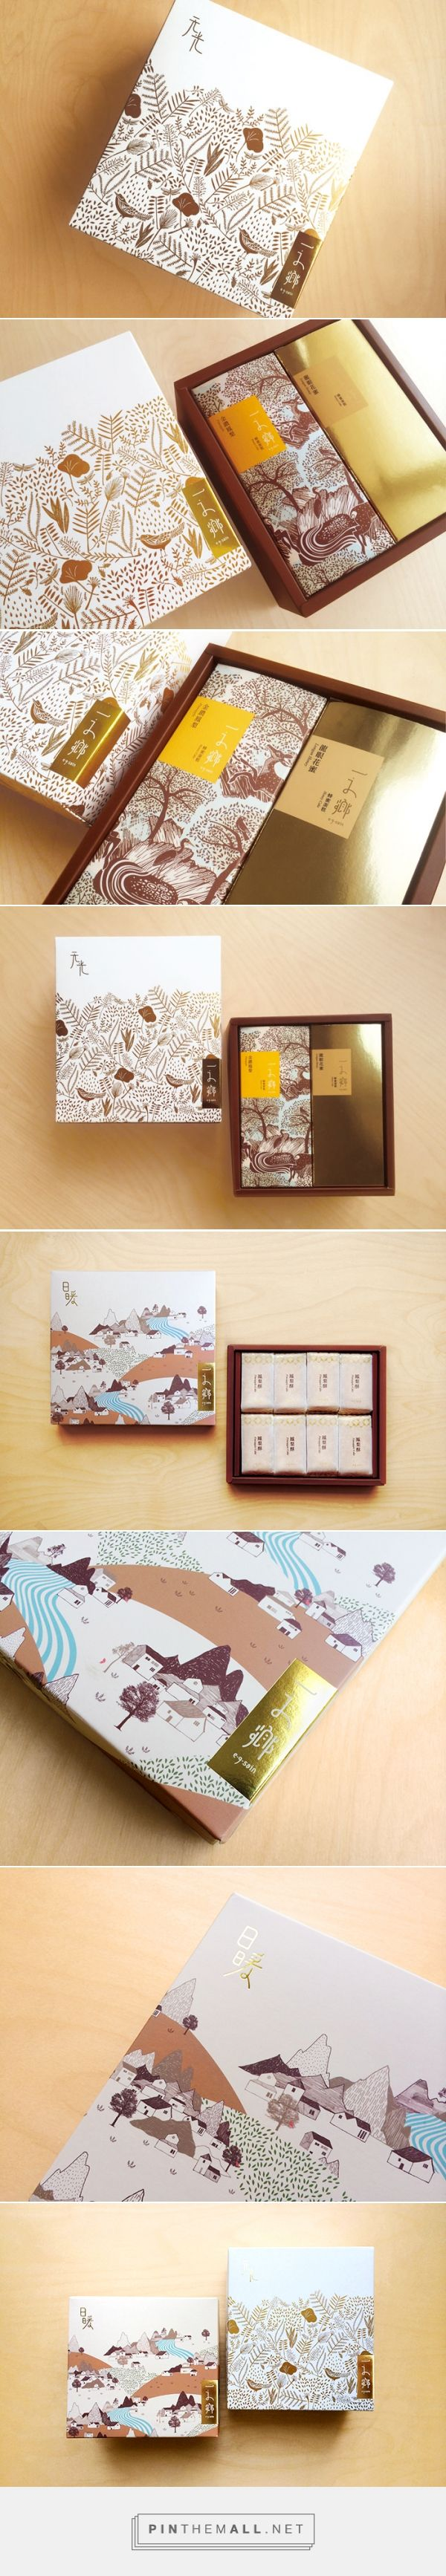 MURA︱東西設計 curated by Packaging Diva PD. Graphic, packaging design. 旅行中,真正嵌入記憶的是那一瞬之間帶來的感觸,此系列包裝以「旅行中的記憶」